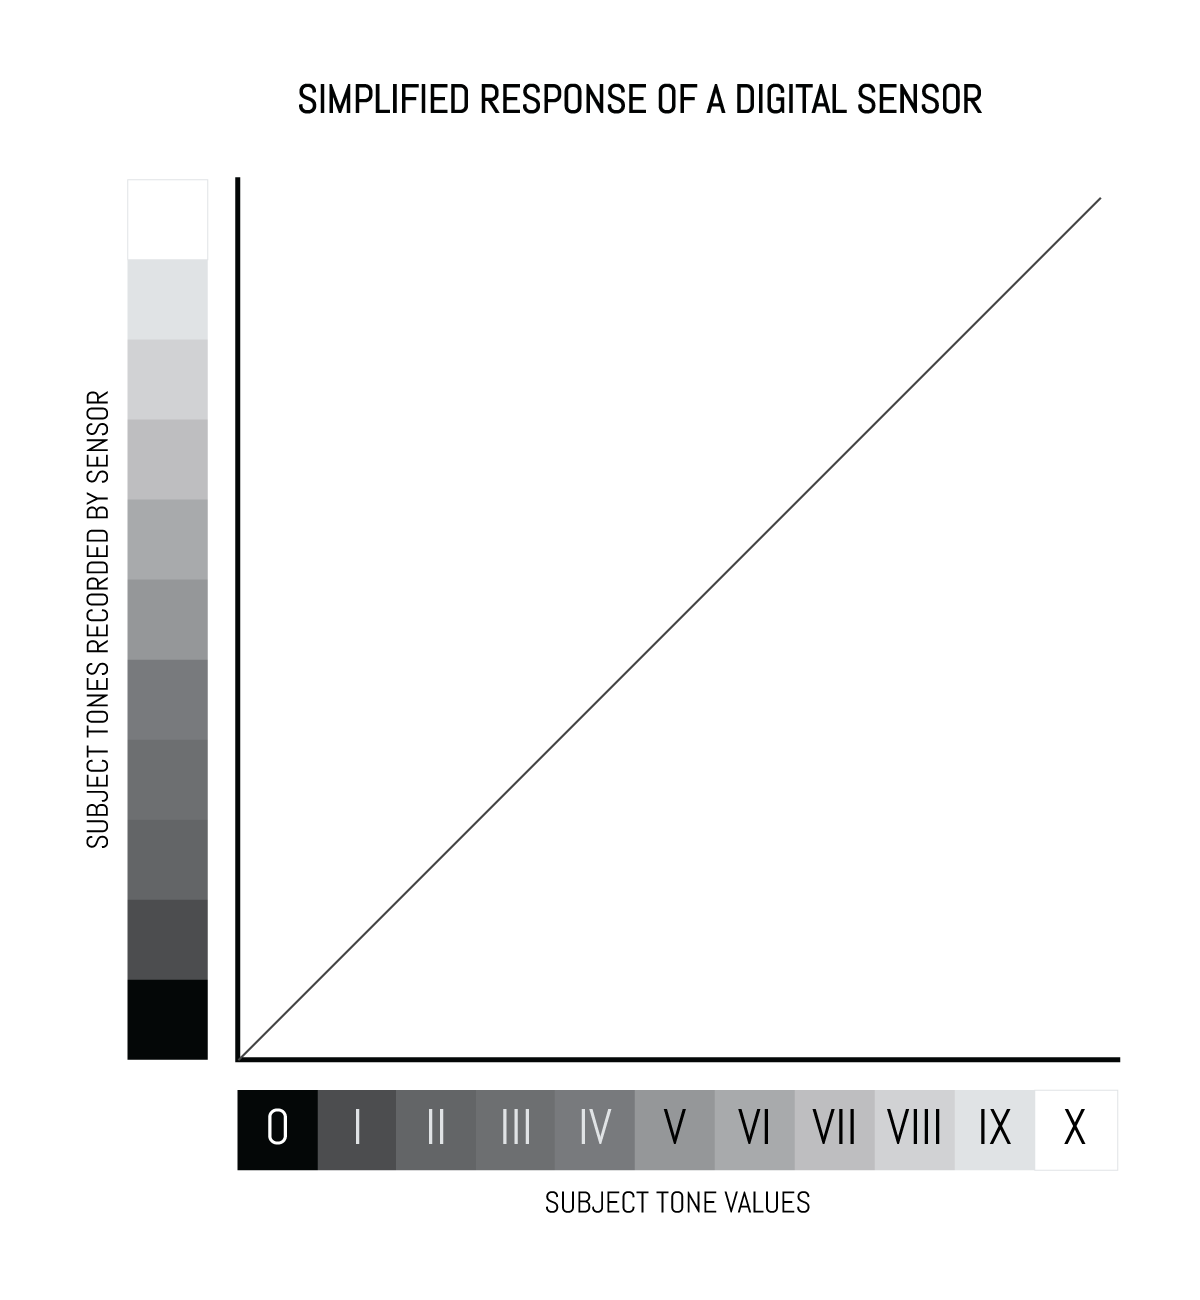 Simplified response of a digital sensor